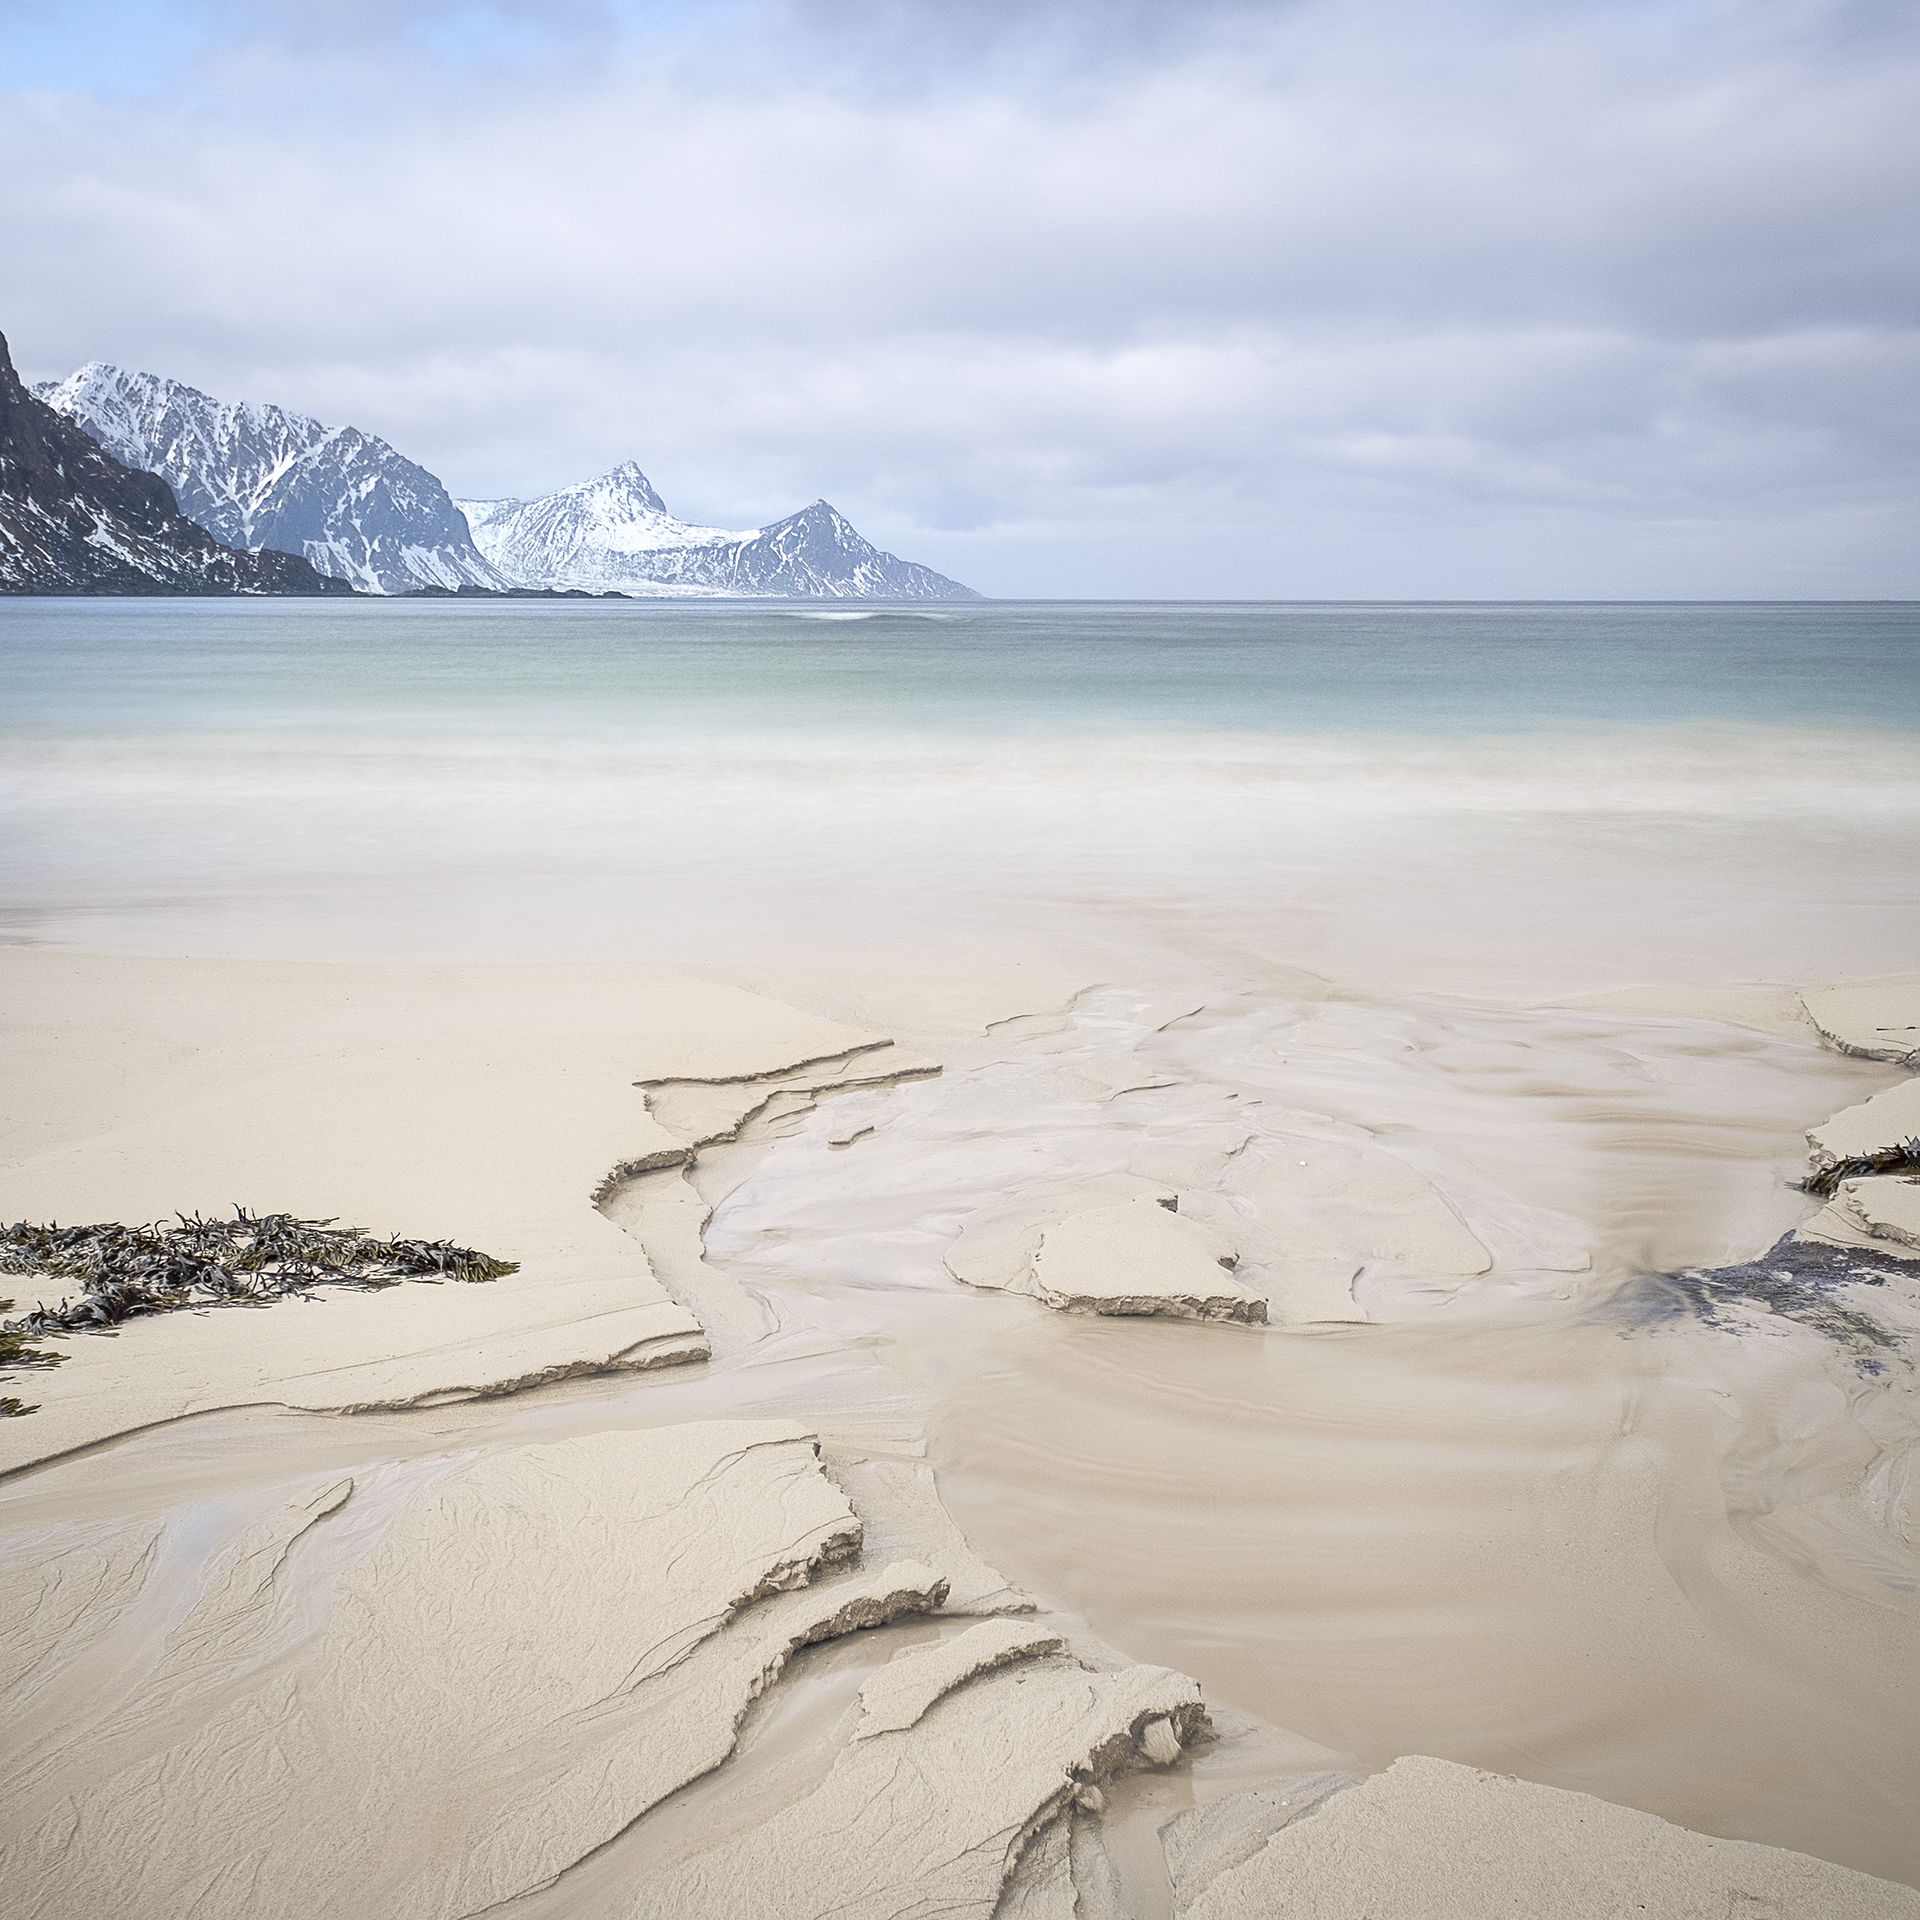 2ND VIK BEACH LOFOTEN CAT JONES DIV 1 COLOUR